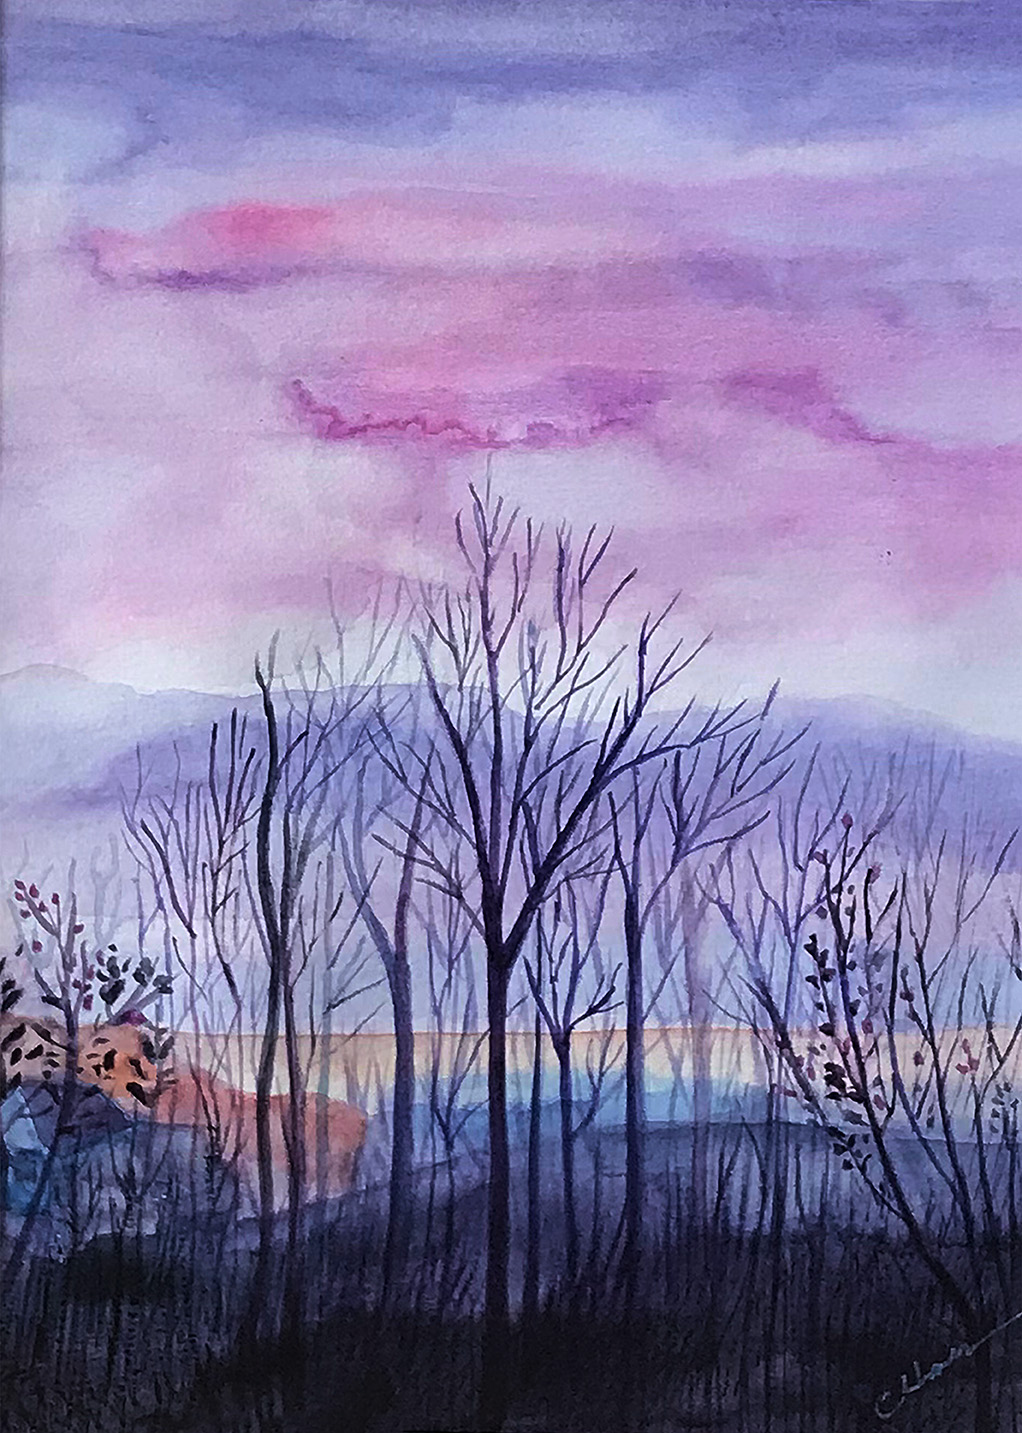 Blue Ridge Mountains in Purple hues